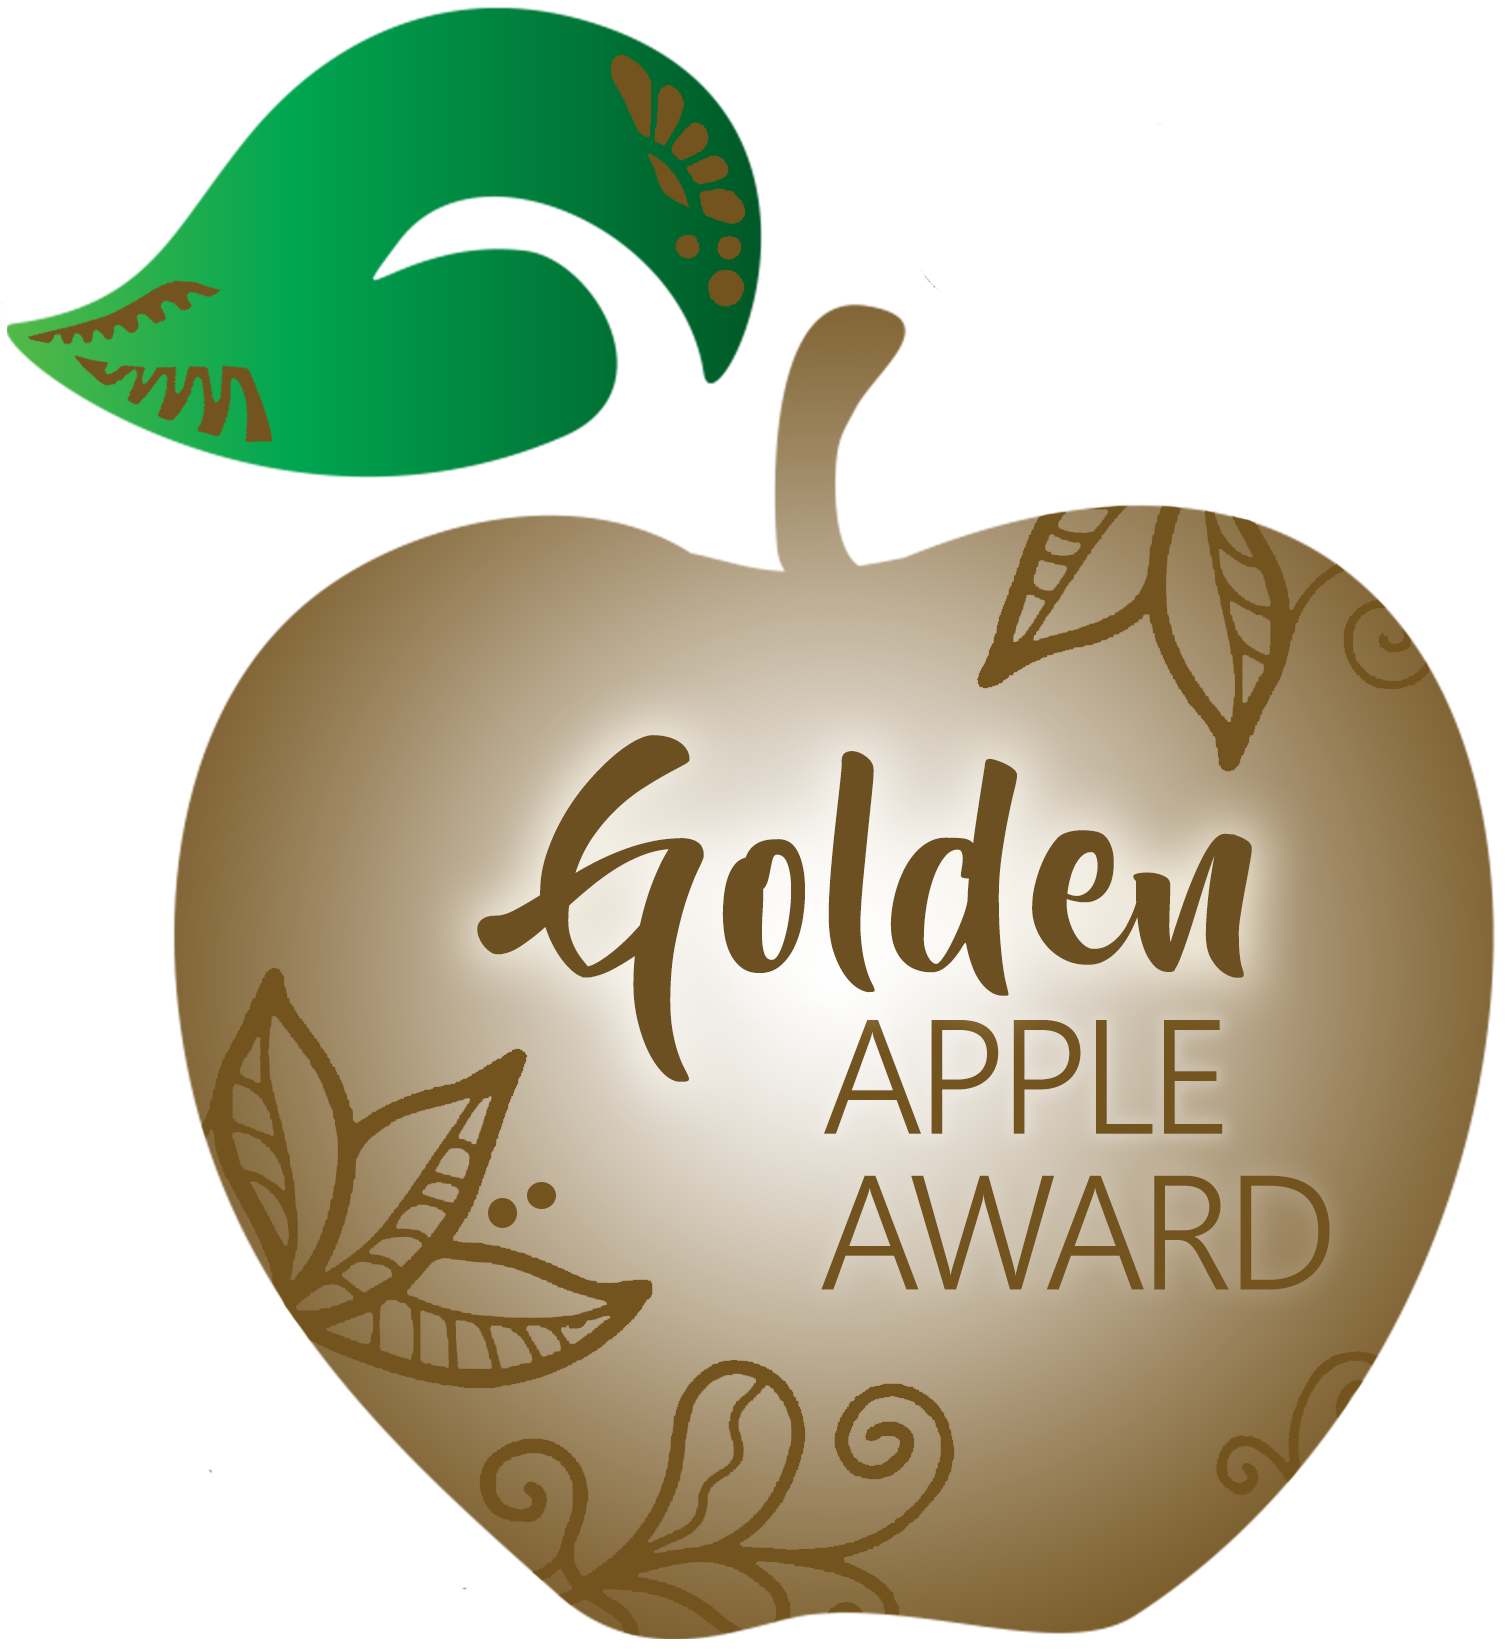 News clipart source information. Golden apple award fox